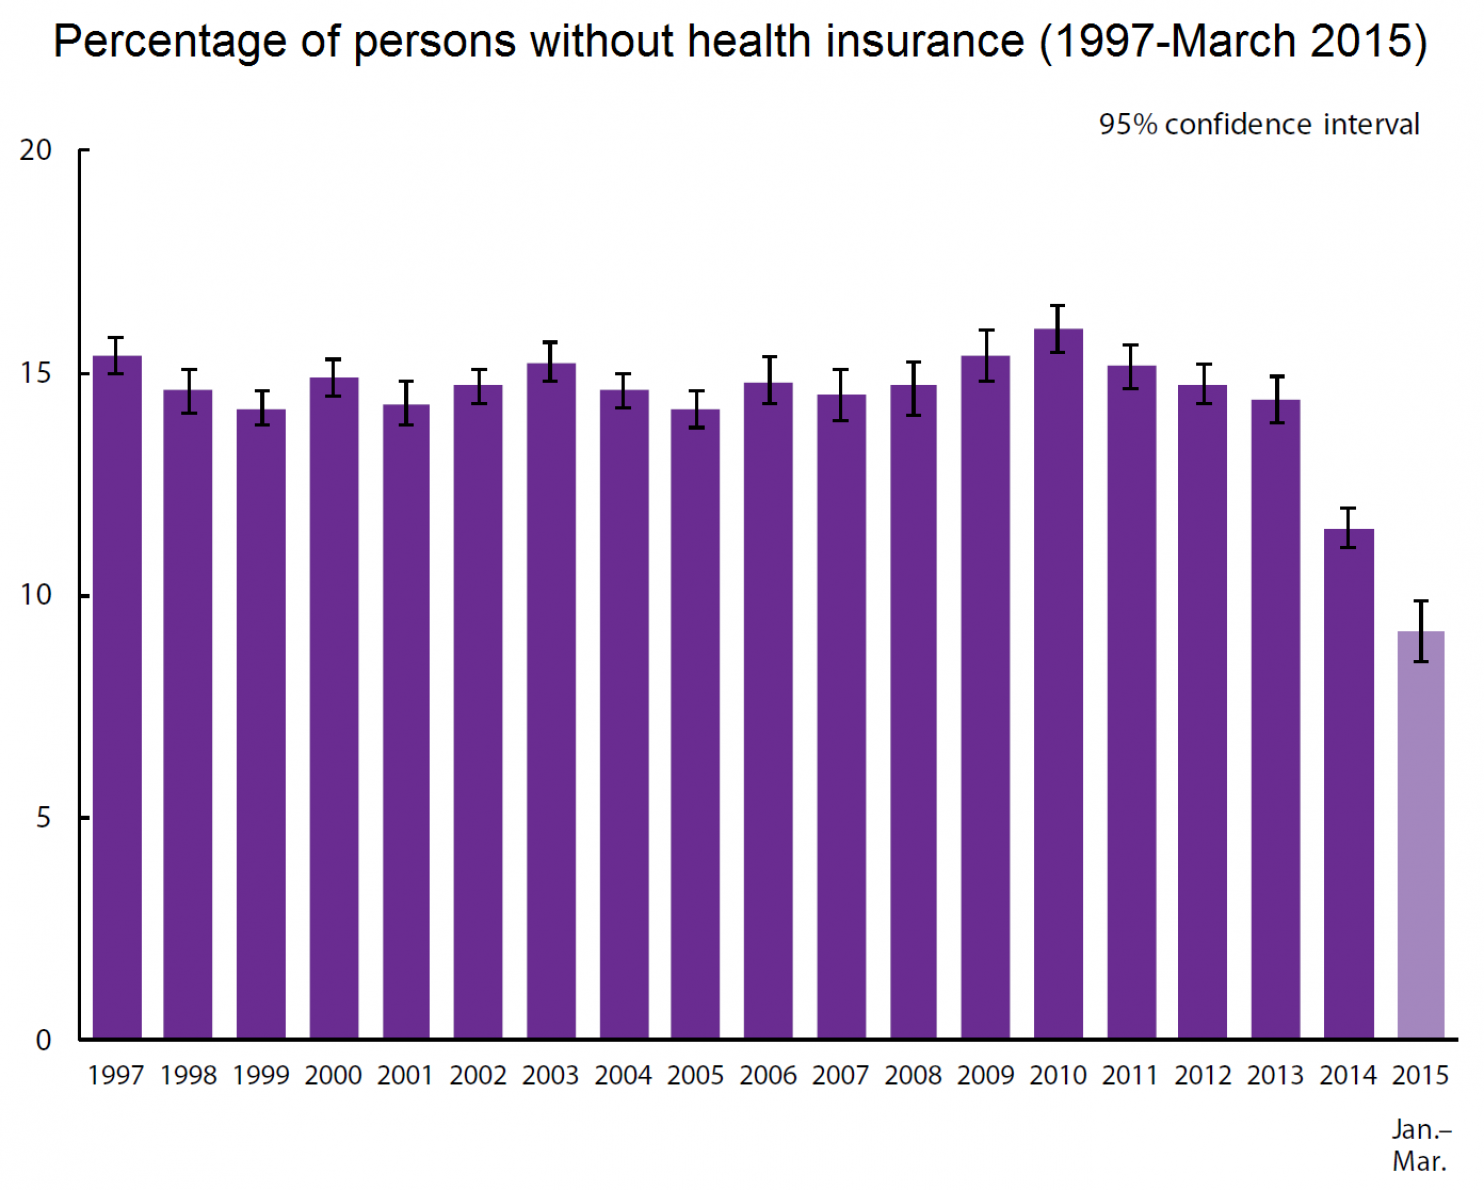 Health Insurance Trends in One Picture